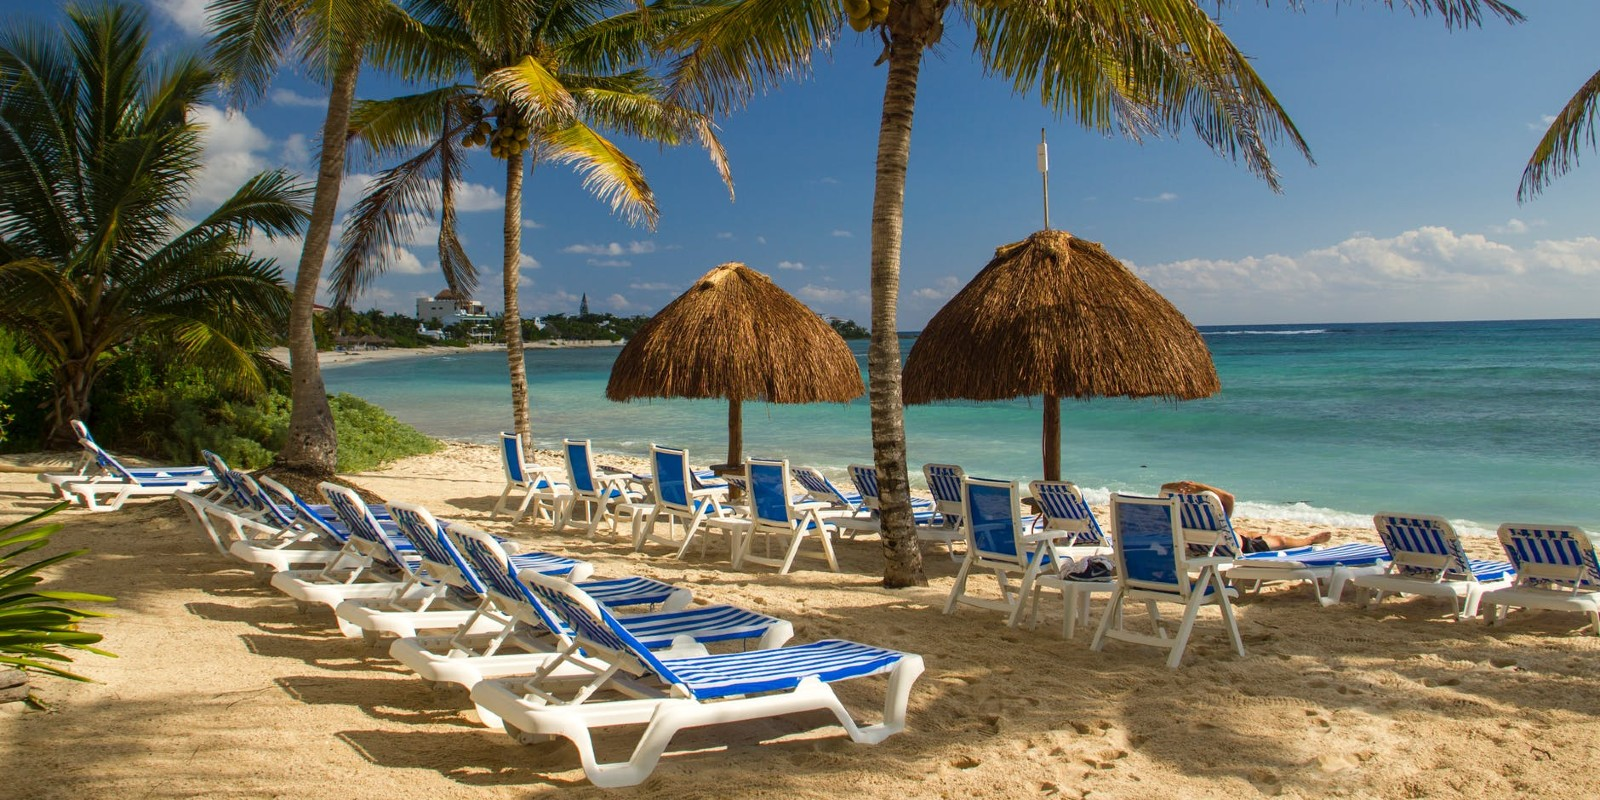 Travel blog: Antigua Or Barbados: Which Island Should You Book and Why?